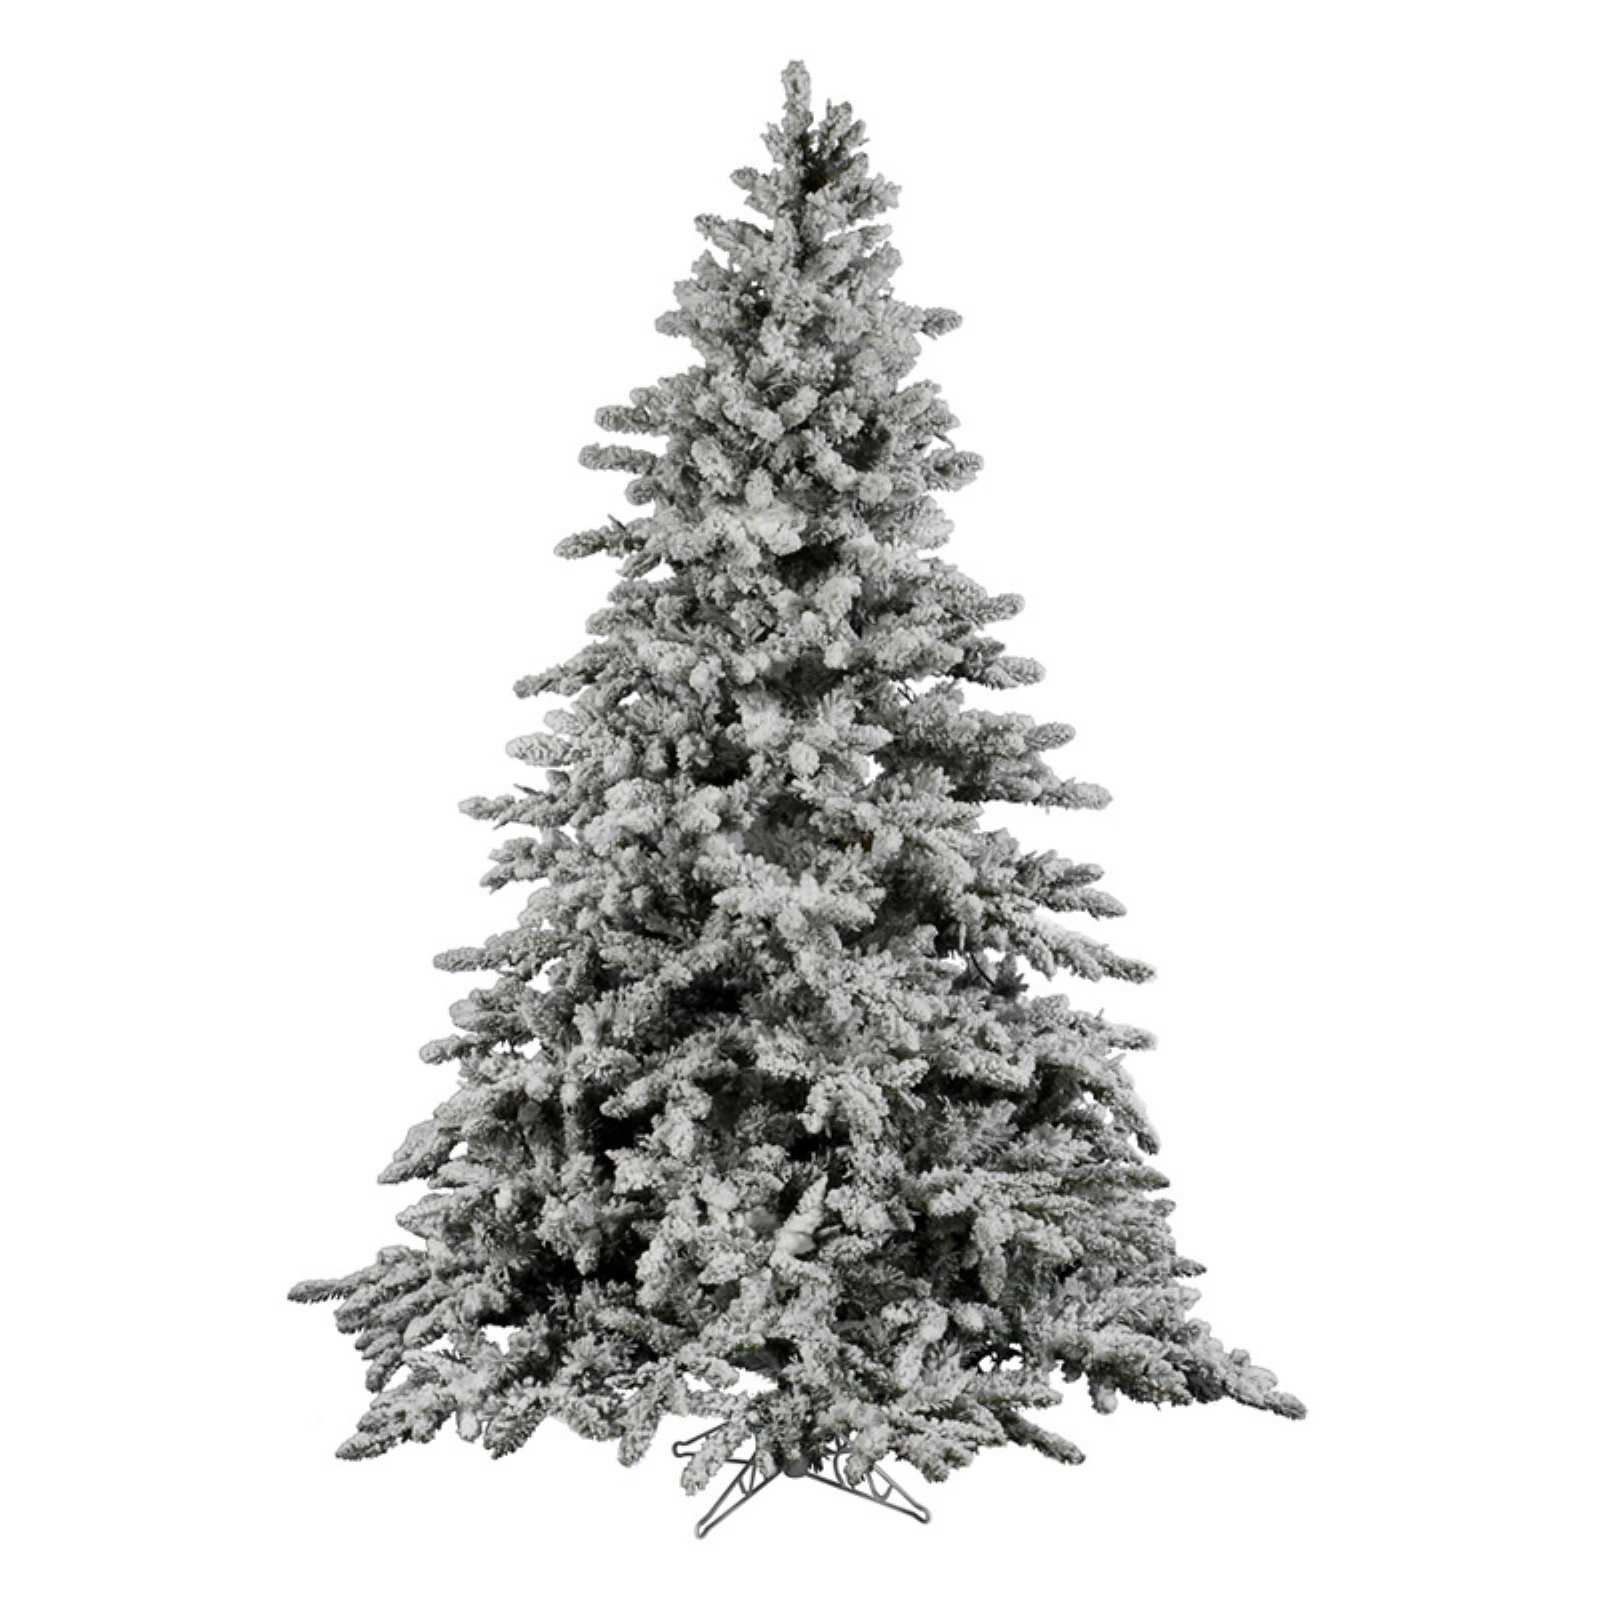 Vickerman 12 ft. Flocked Utica Fir Christmas Tree by Vickerman Company